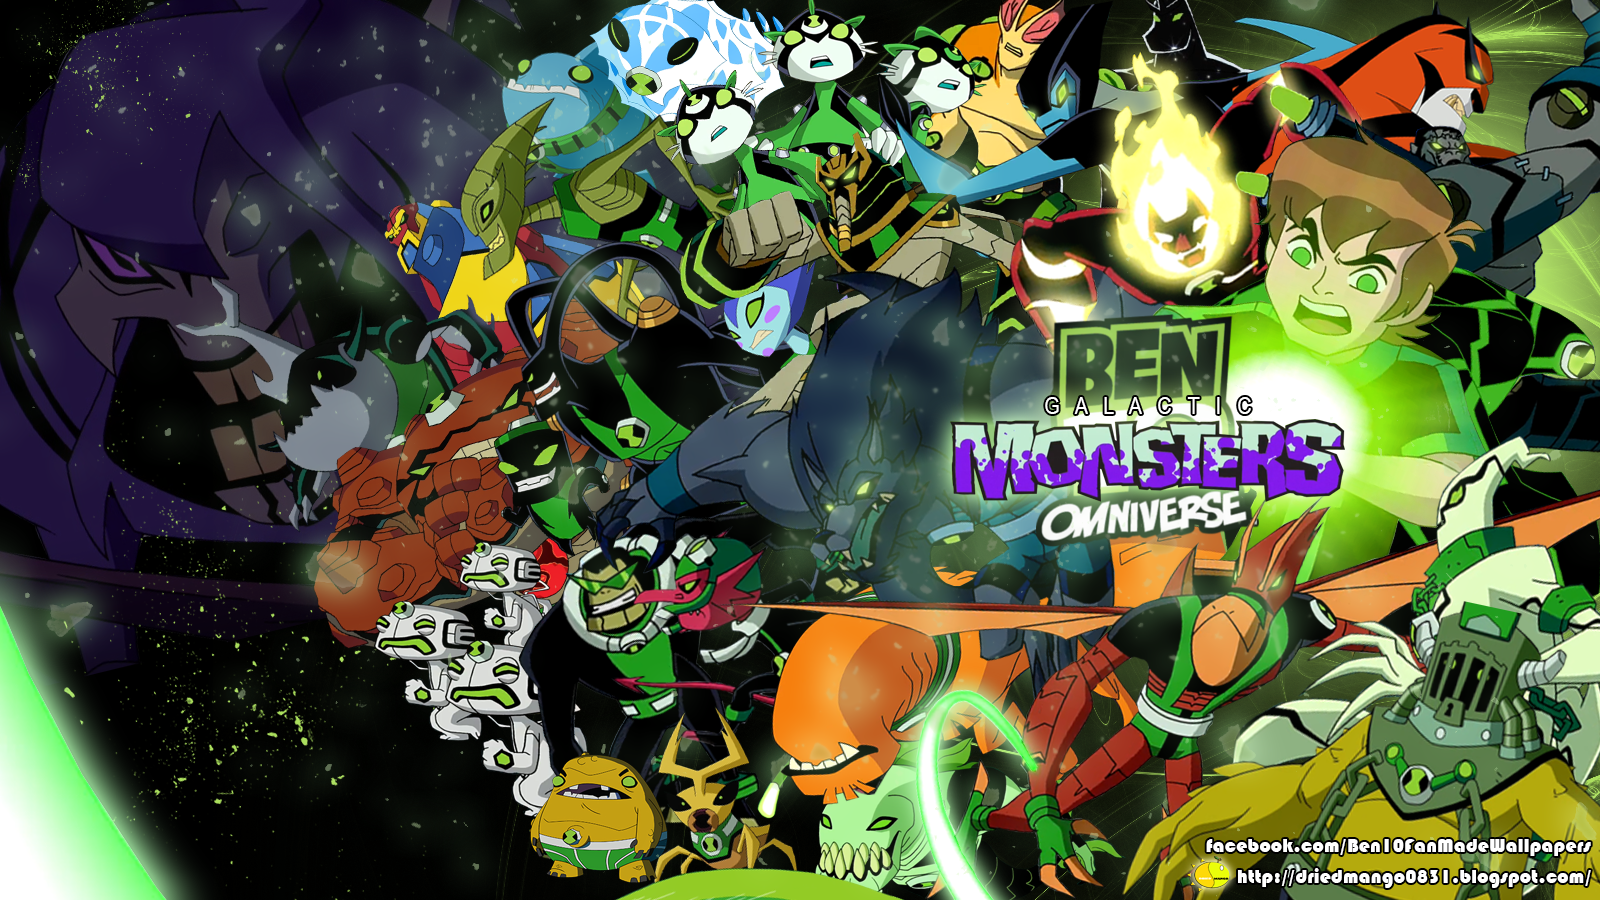 Dried mango ben 10 omniverse galactic monsters wallpaper you might also like another ben 10 omniverse voltagebd Choice Image